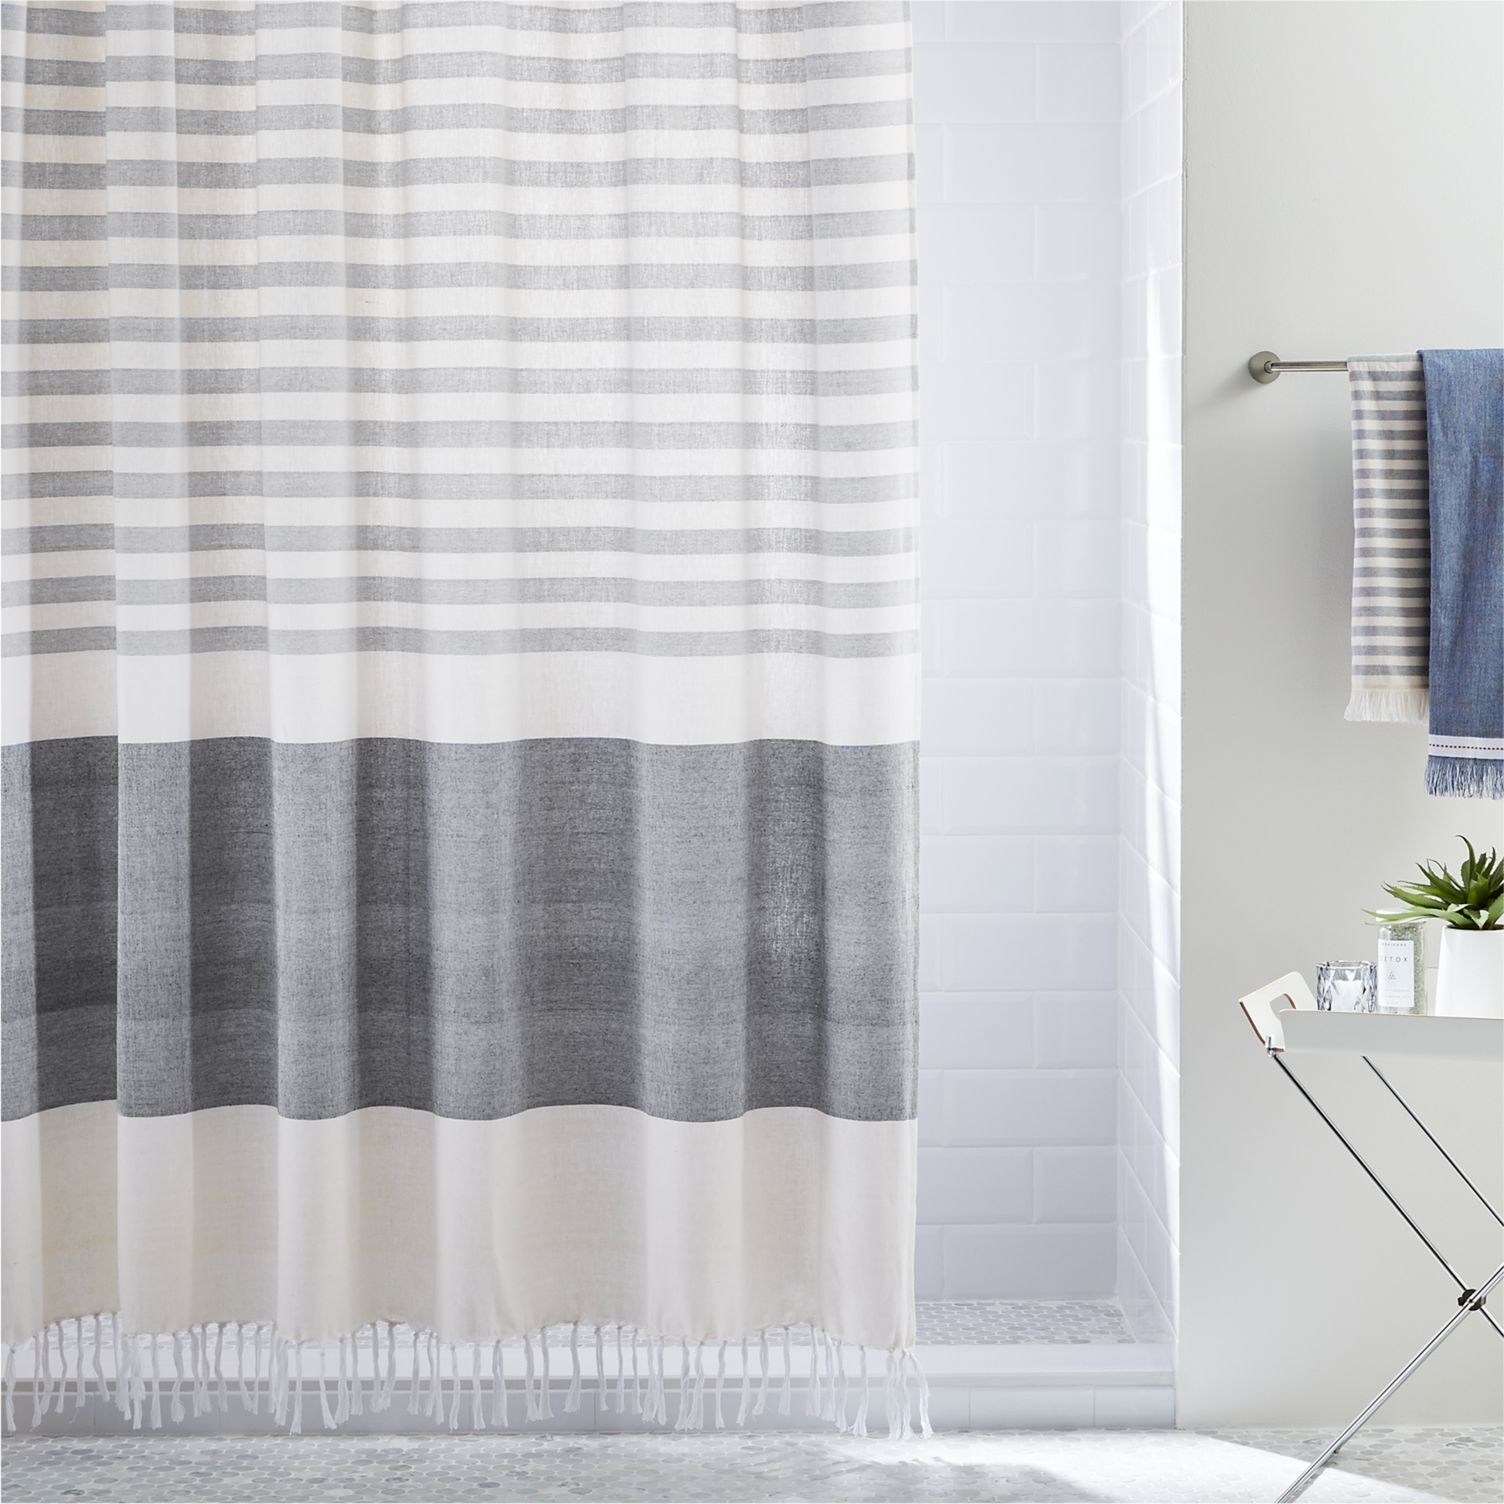 Tasseled shower curtain with grey stripes